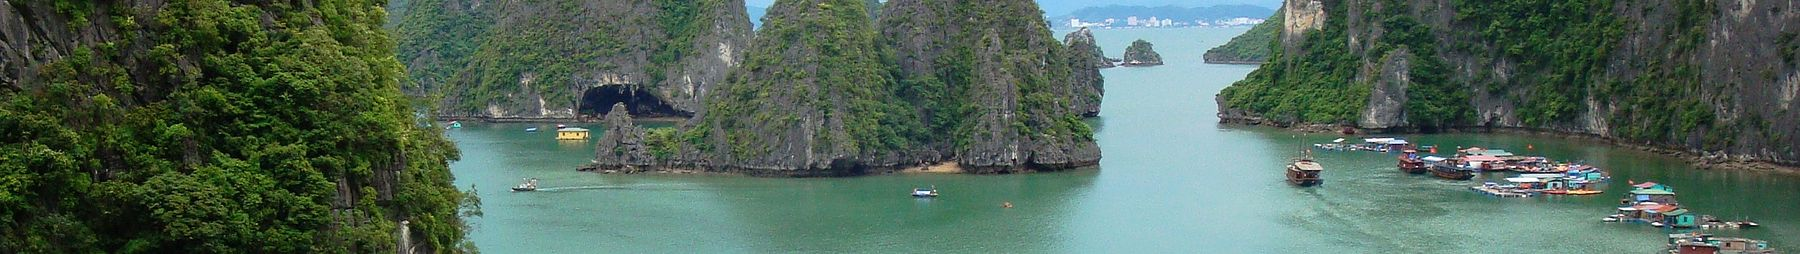 Ha Long Bay Banner.JPG